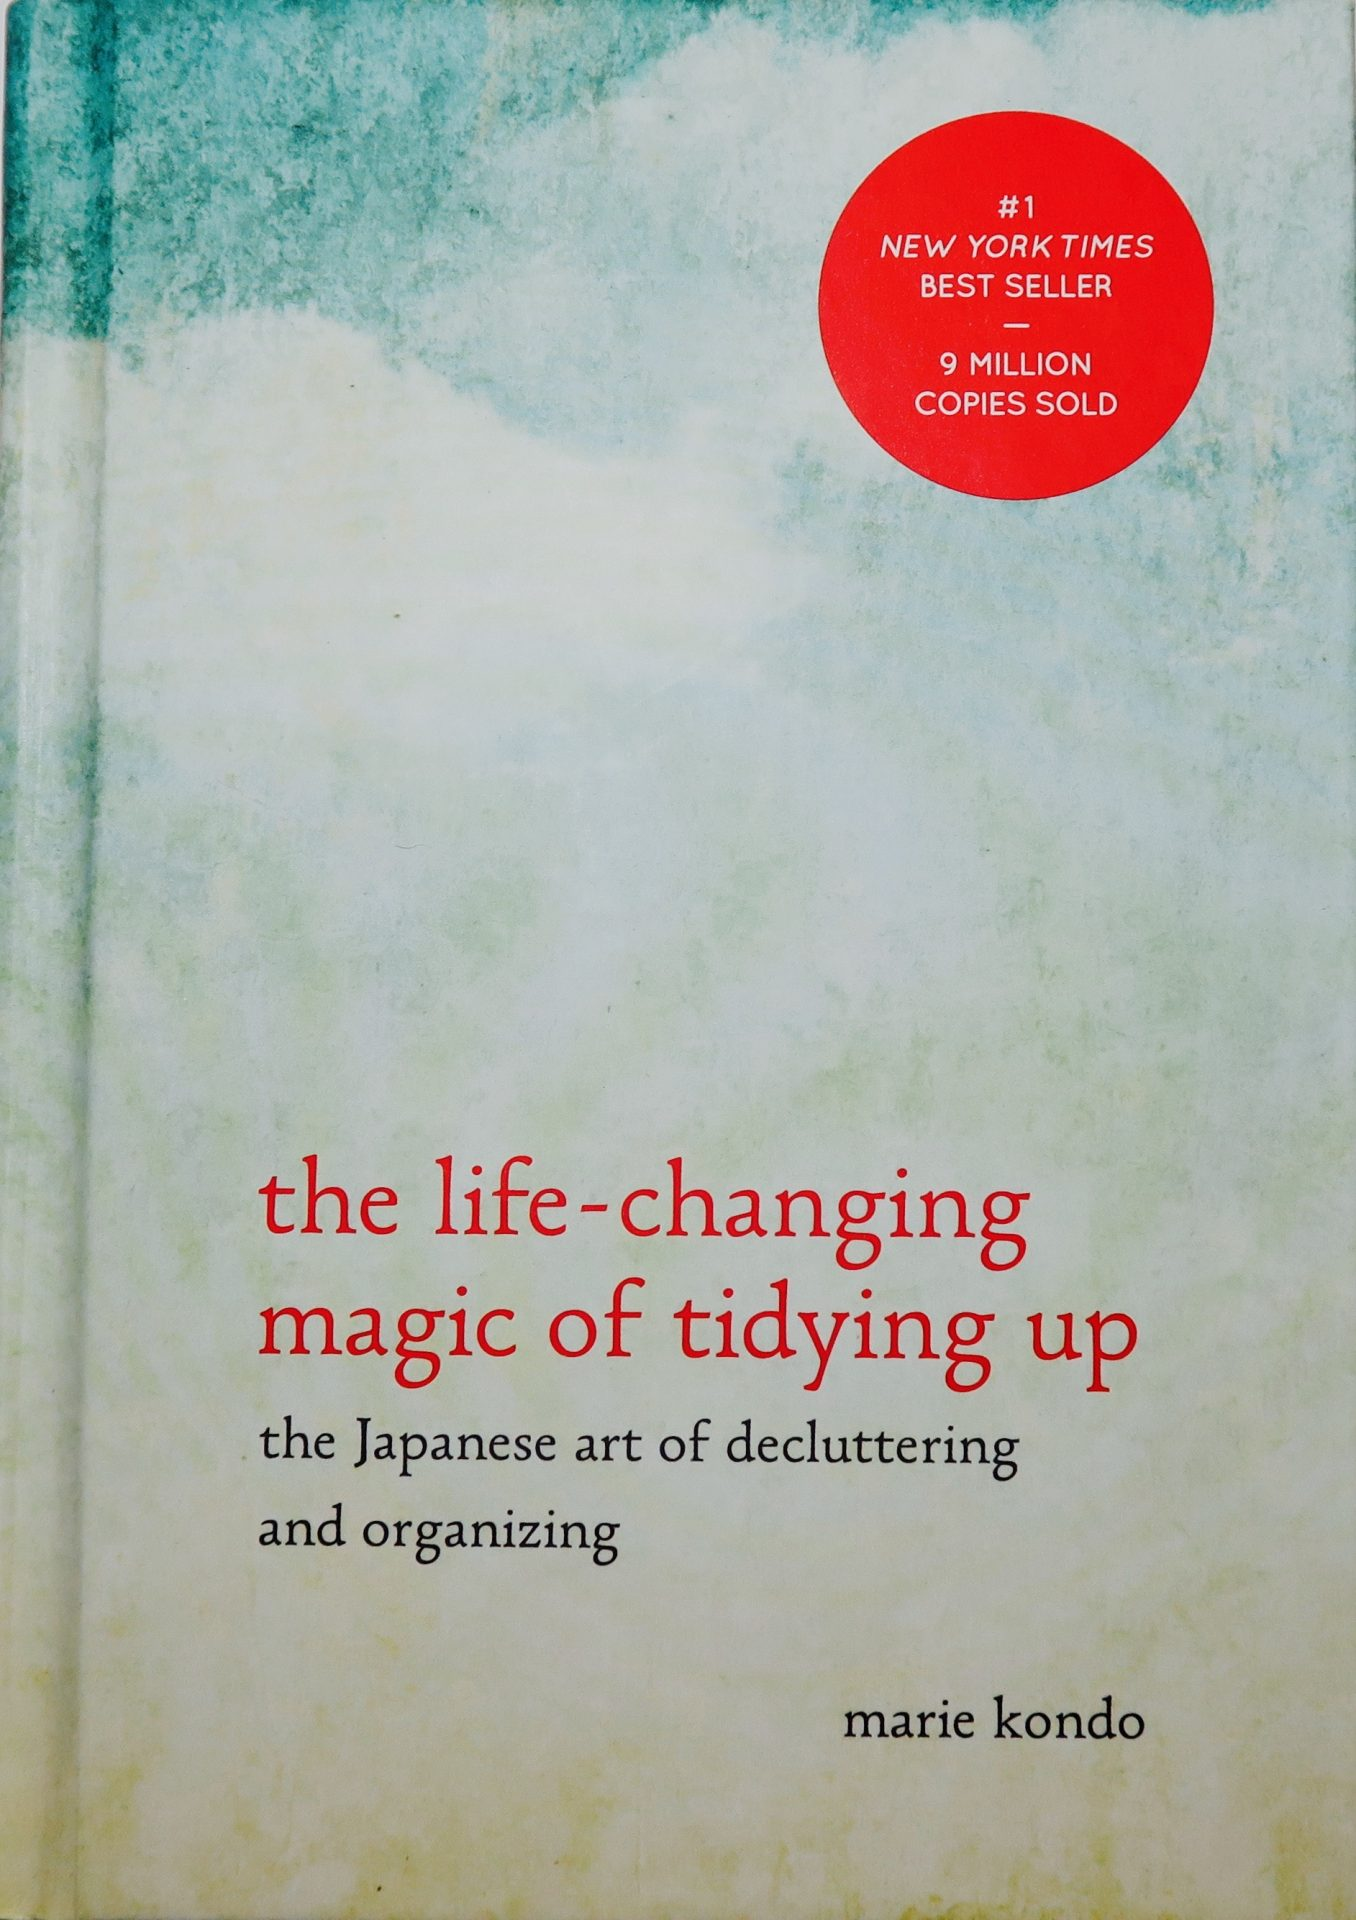 the Like-changing magic of tidying up book